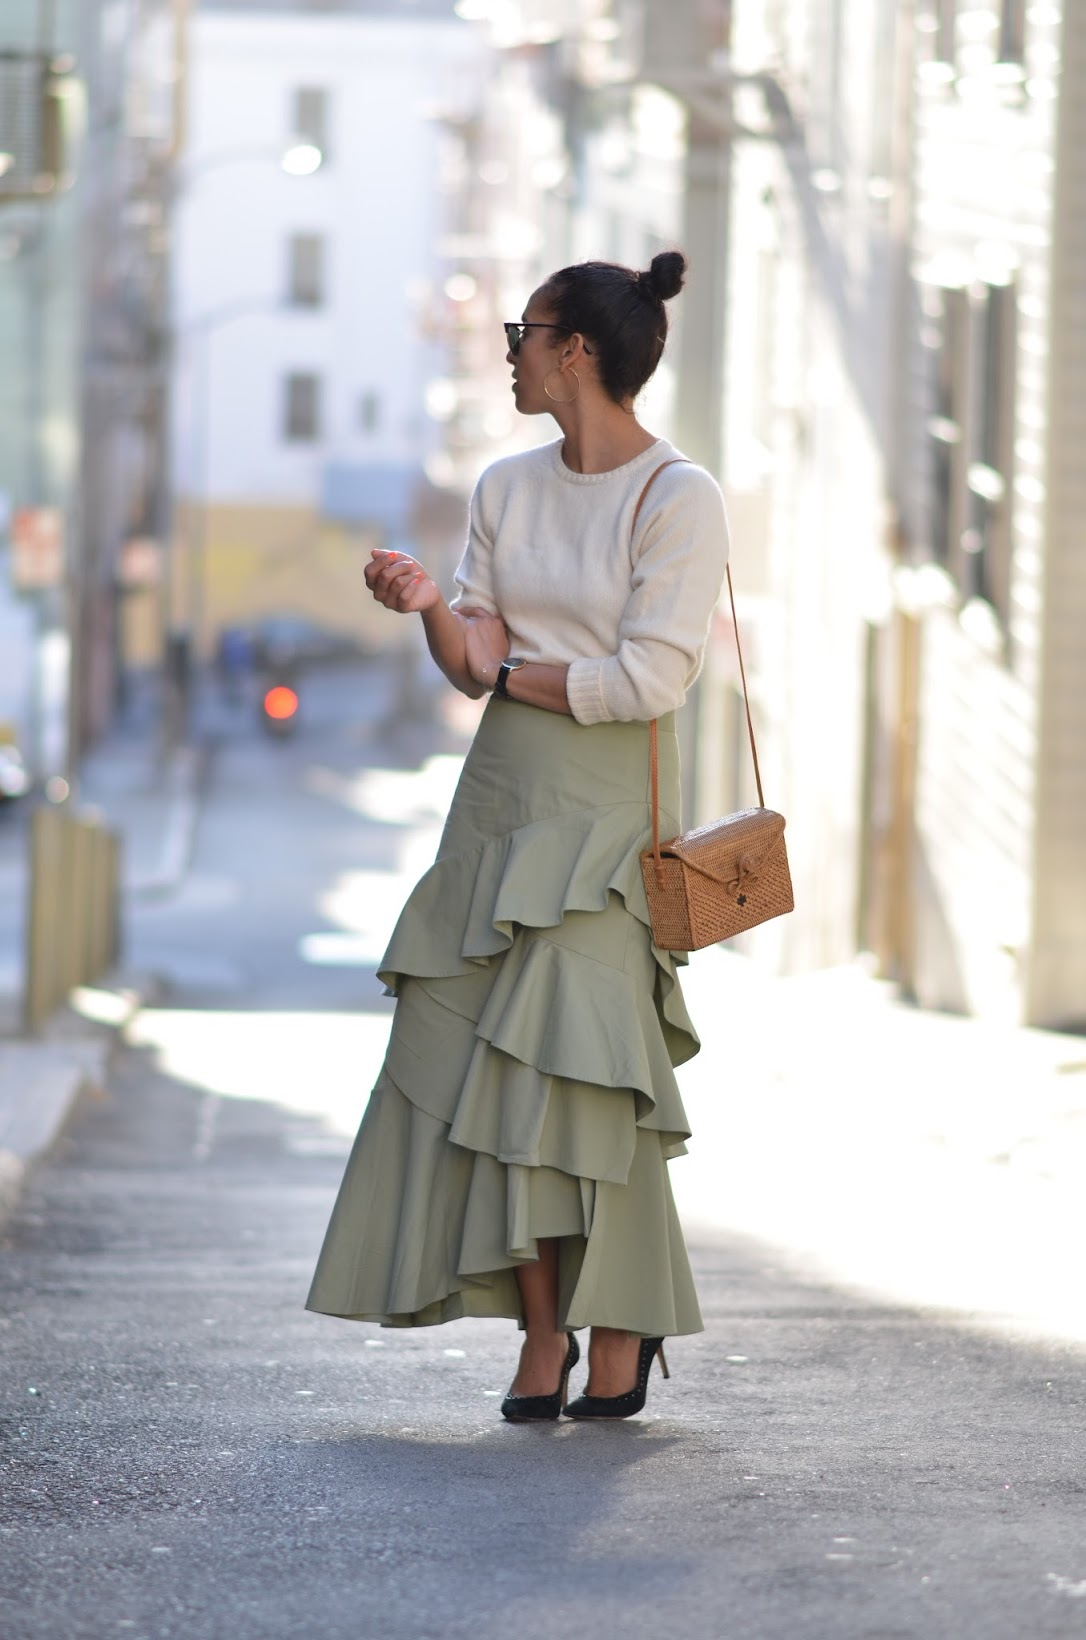 Banana Republic maxi ruffle skirt, box basket bag, brown lip color for fall, cozy and chic fall look, chic fall style, street style